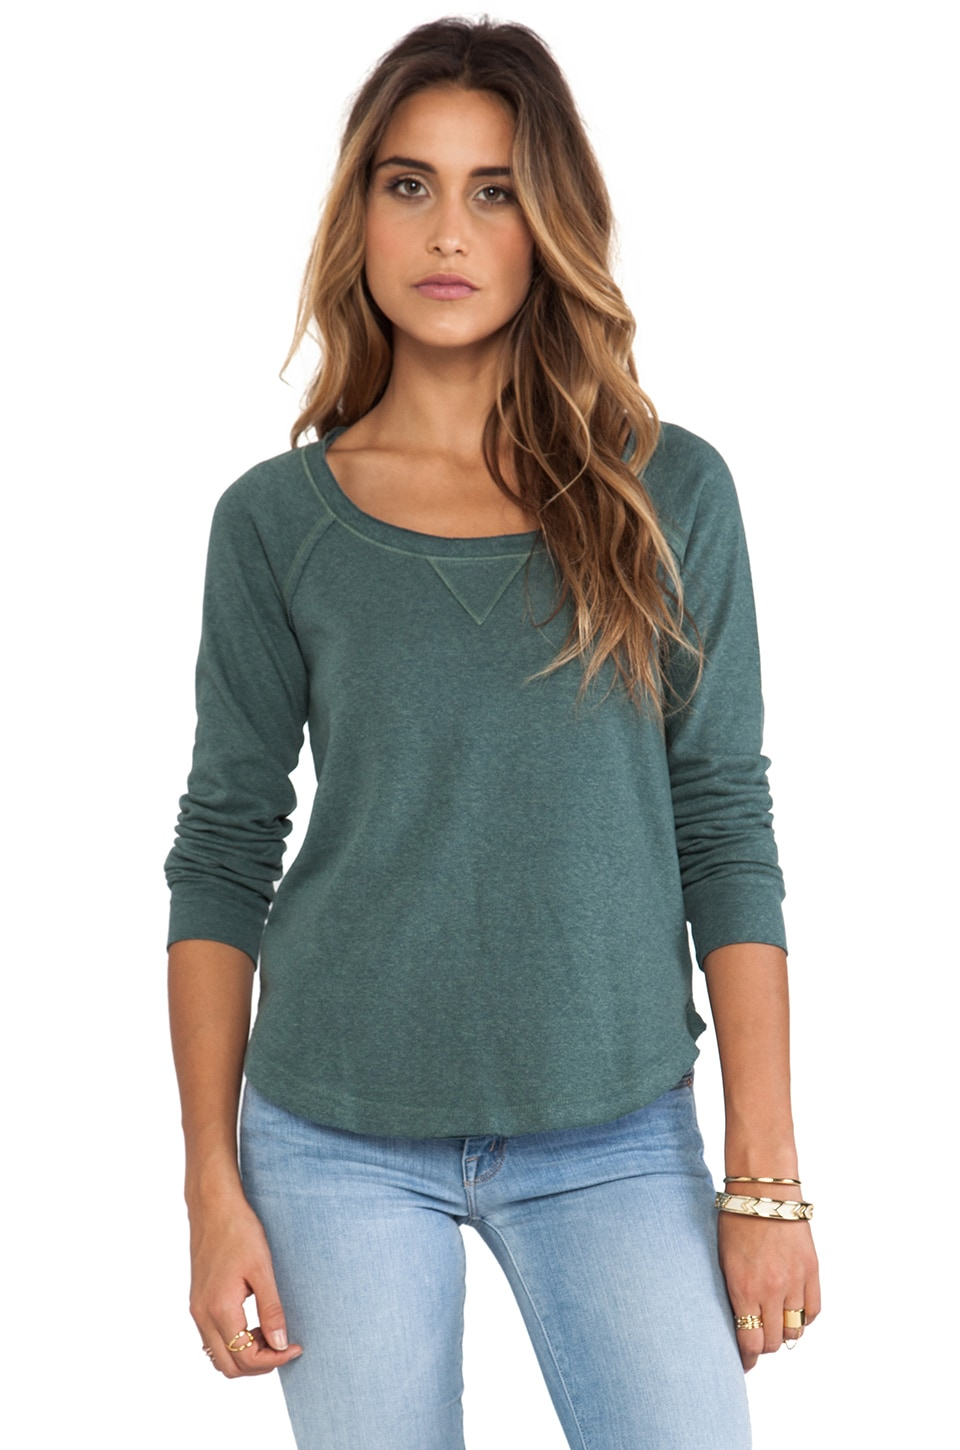 Splendid Pullover Sweatshirt in Camo Green